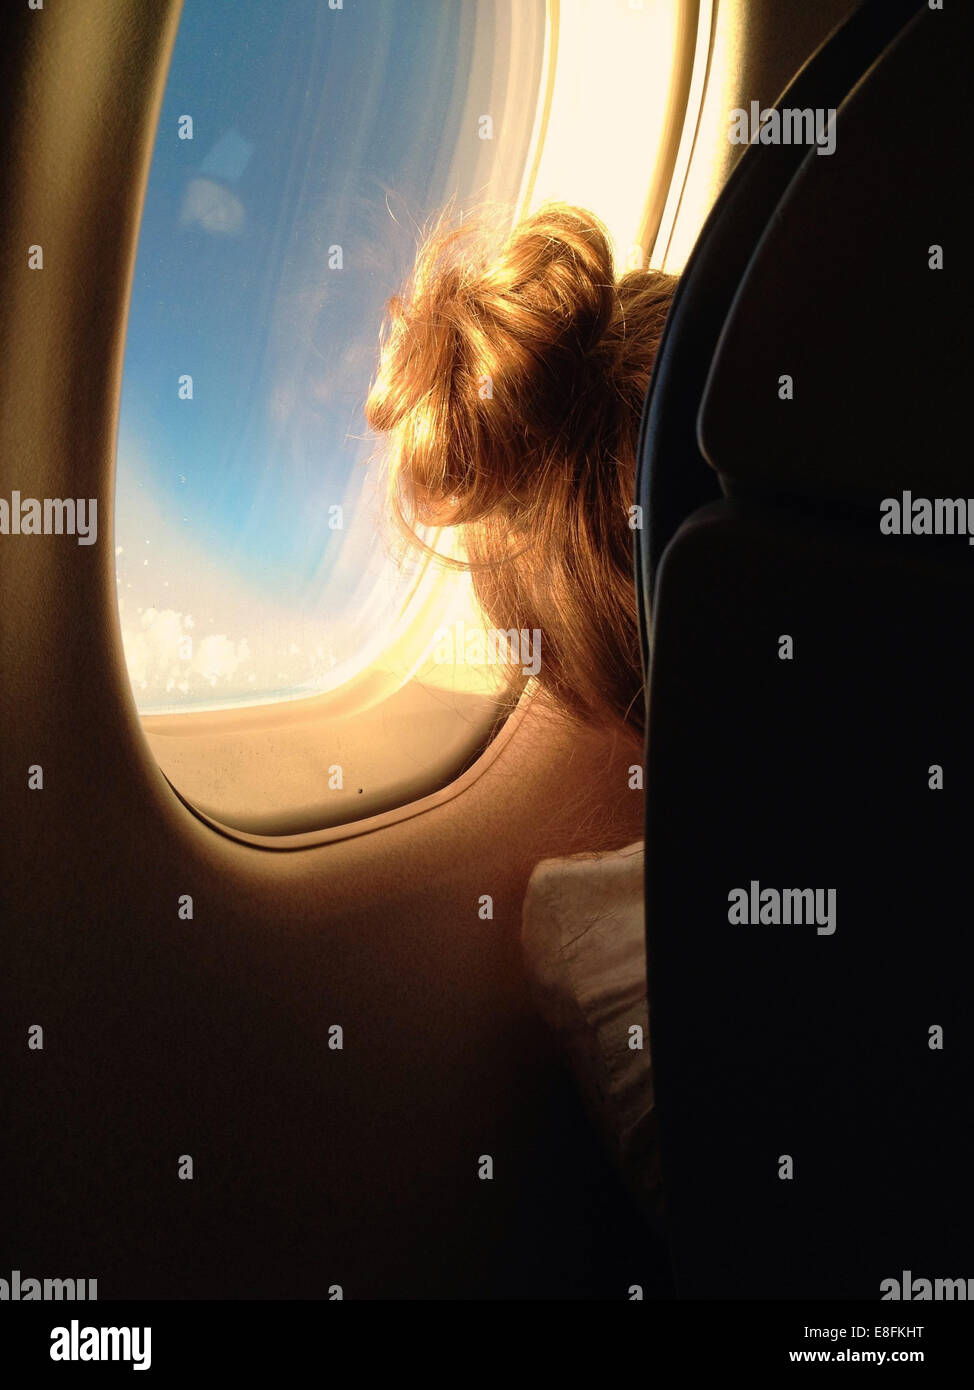 Rear View Of A Girl Sitting In A Plane - Stock Image